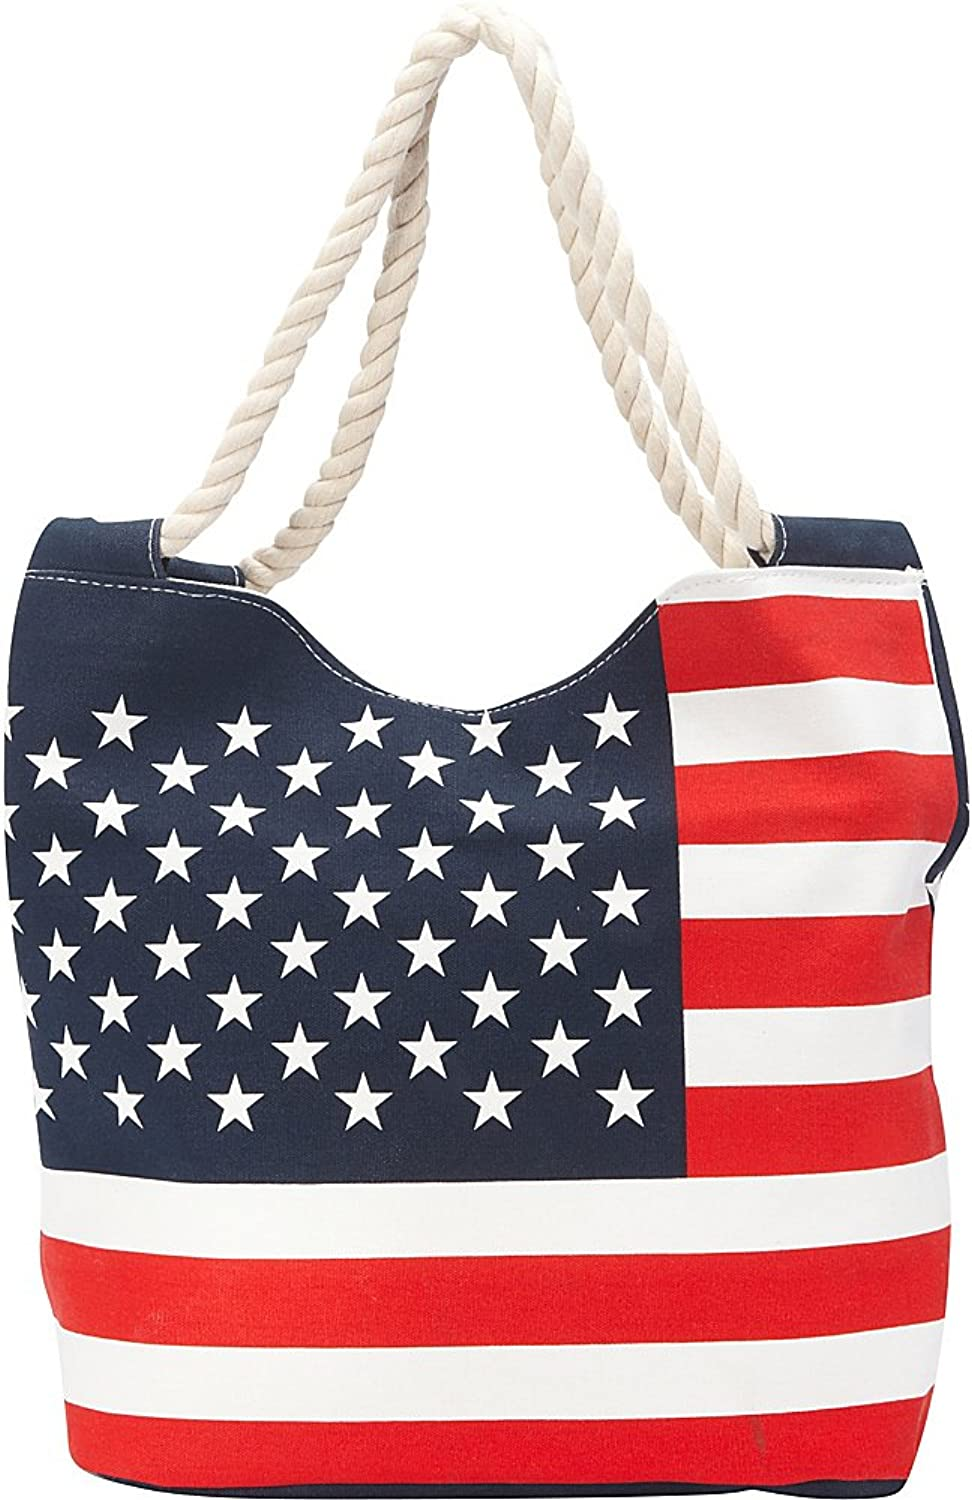 Stars And Stripes Canvas Zippered Tote Bag